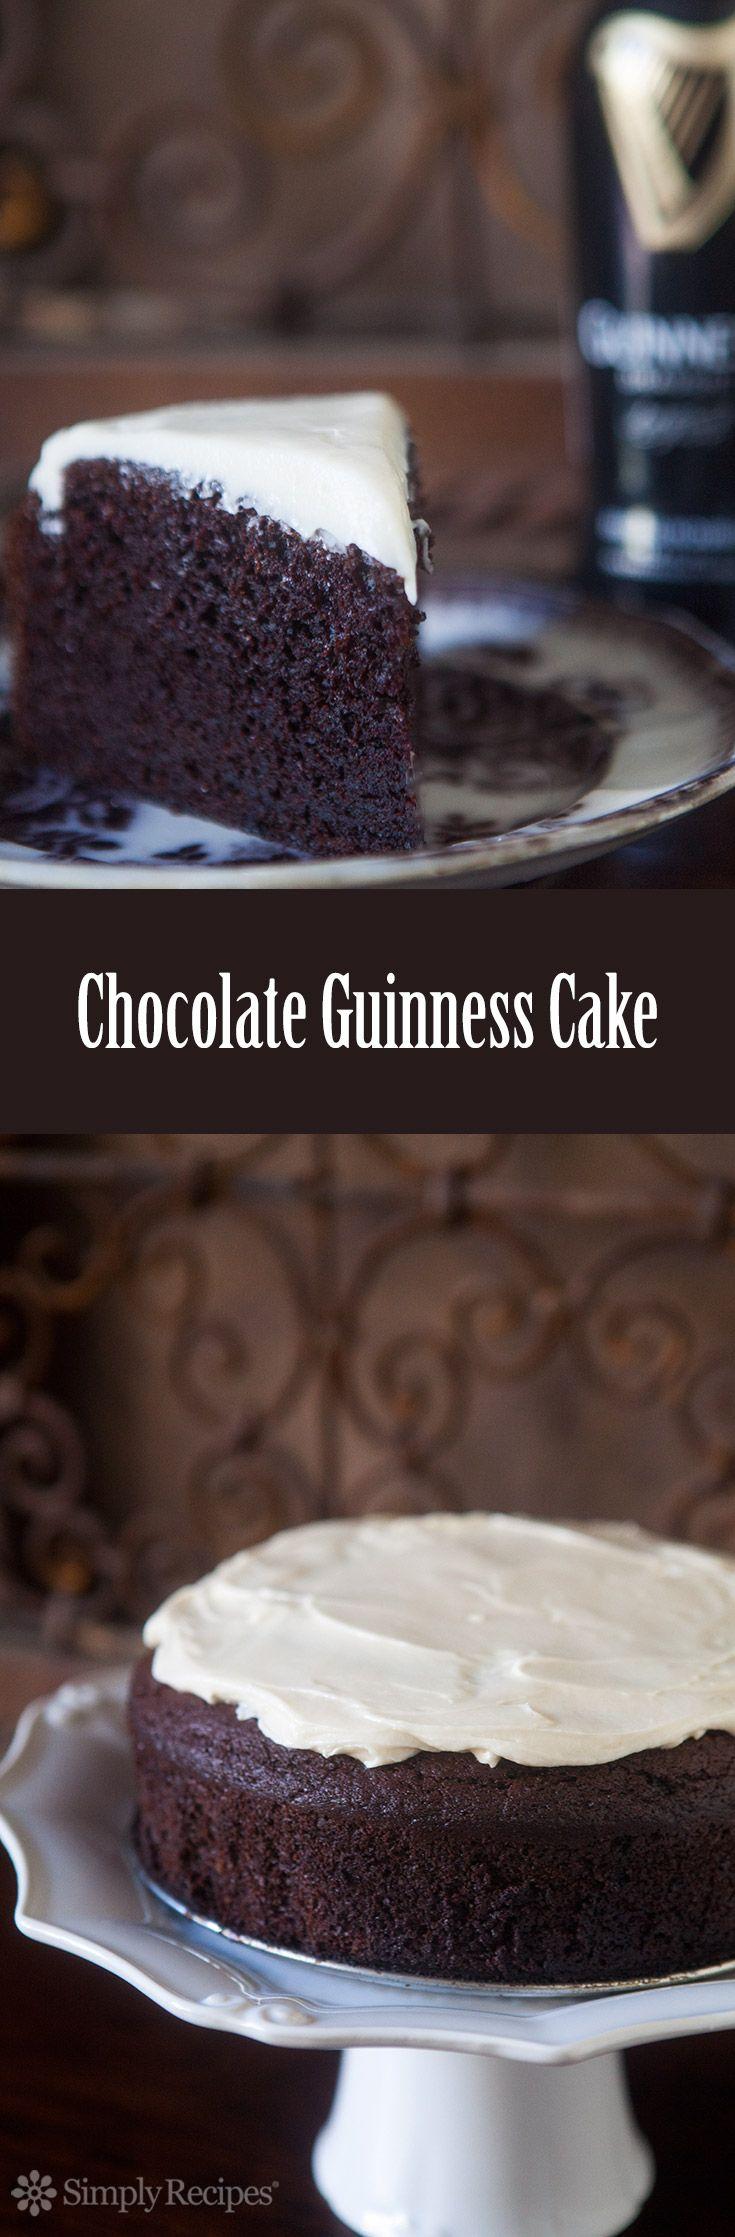 Best 25+ Guinness cake ideas on Pinterest | Chocolate guinness ...